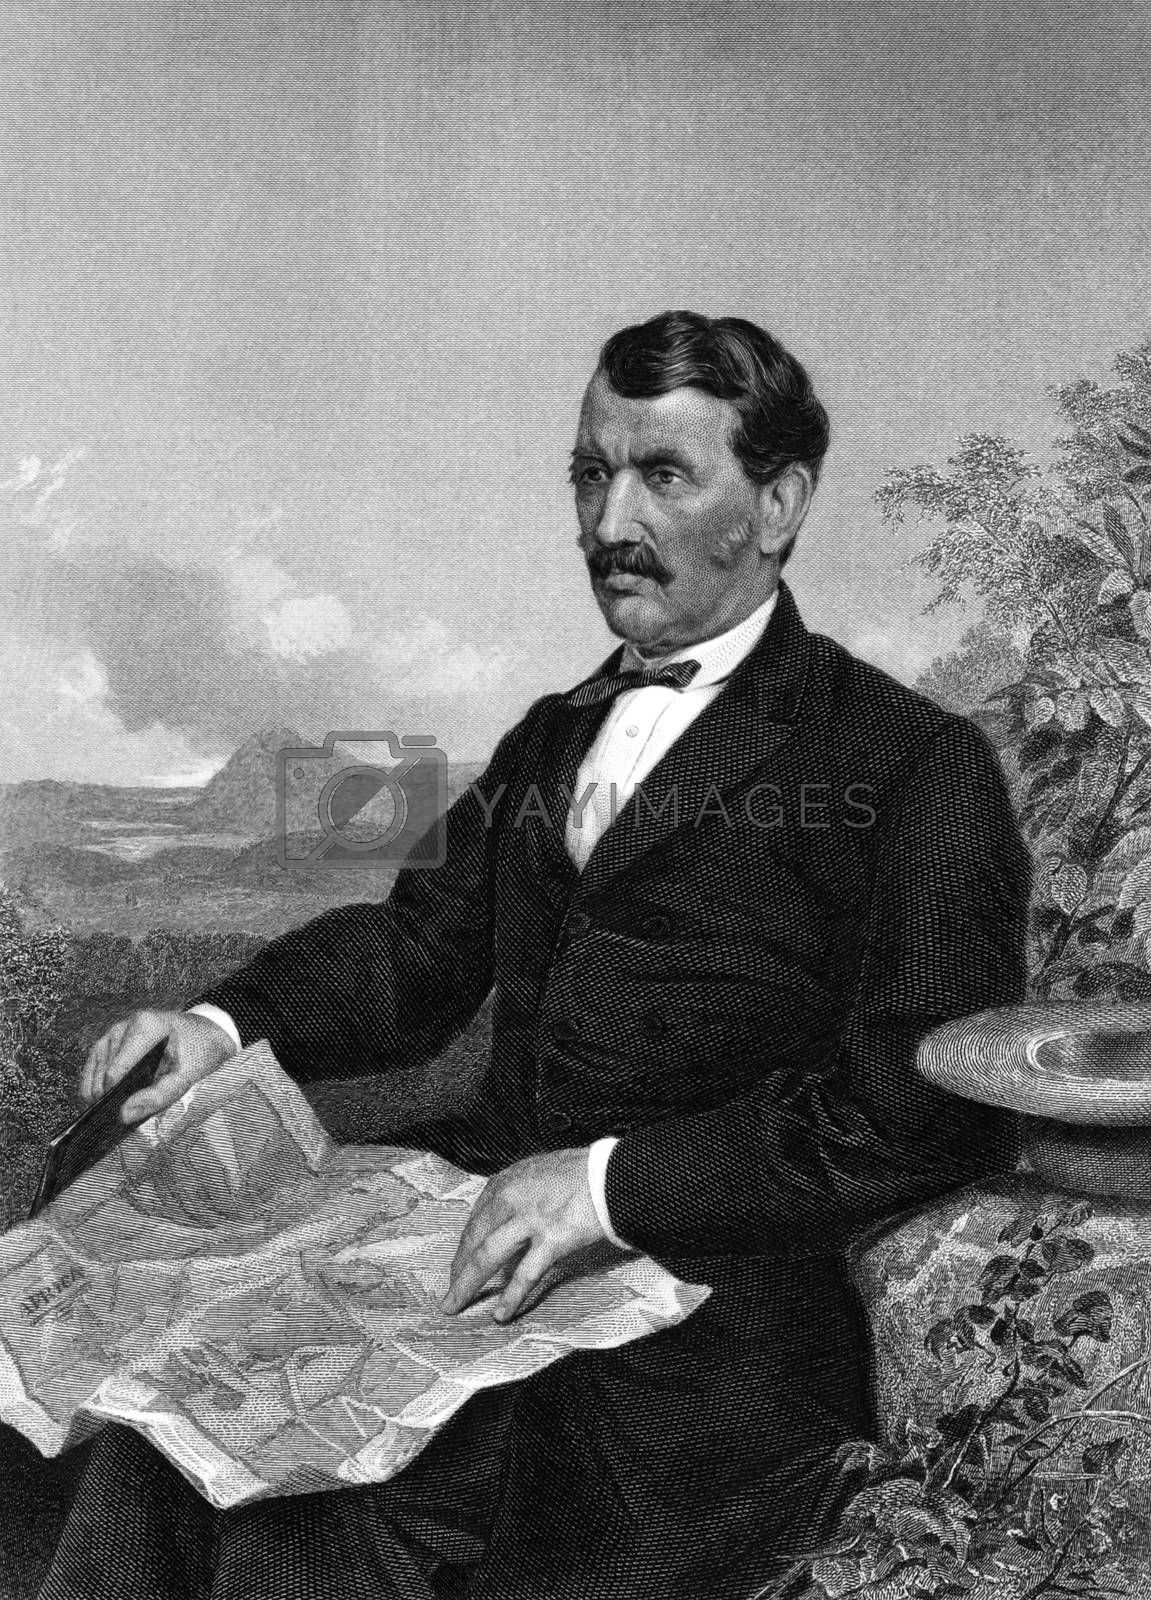 David Livingstone (1813-1873) on engraving from 1873. Scottish Congregationalist pioneer medical missionary with the London Missionary Society and an explorer in Africa. Engraved by unknown artist and published in ''Portrait Gallery of Eminent Men and Women with Biographies'',USA,1873.